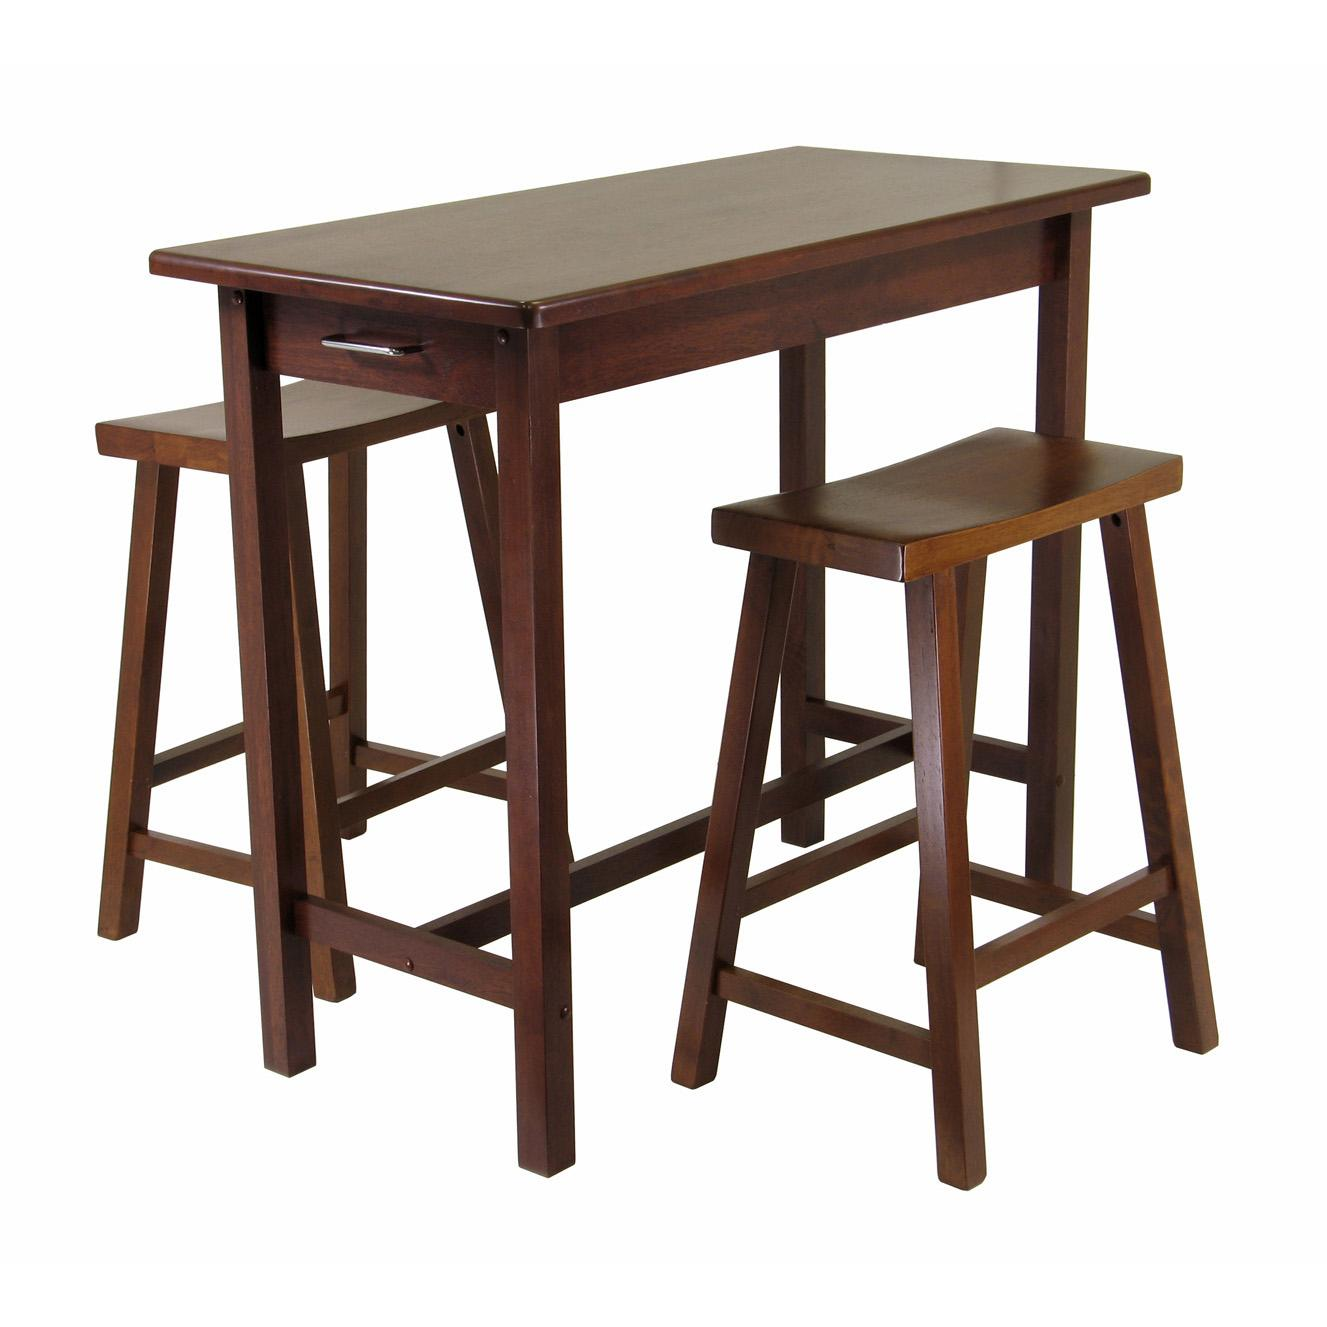 Winsome kitchen island table with 2 drawers and saddle stools